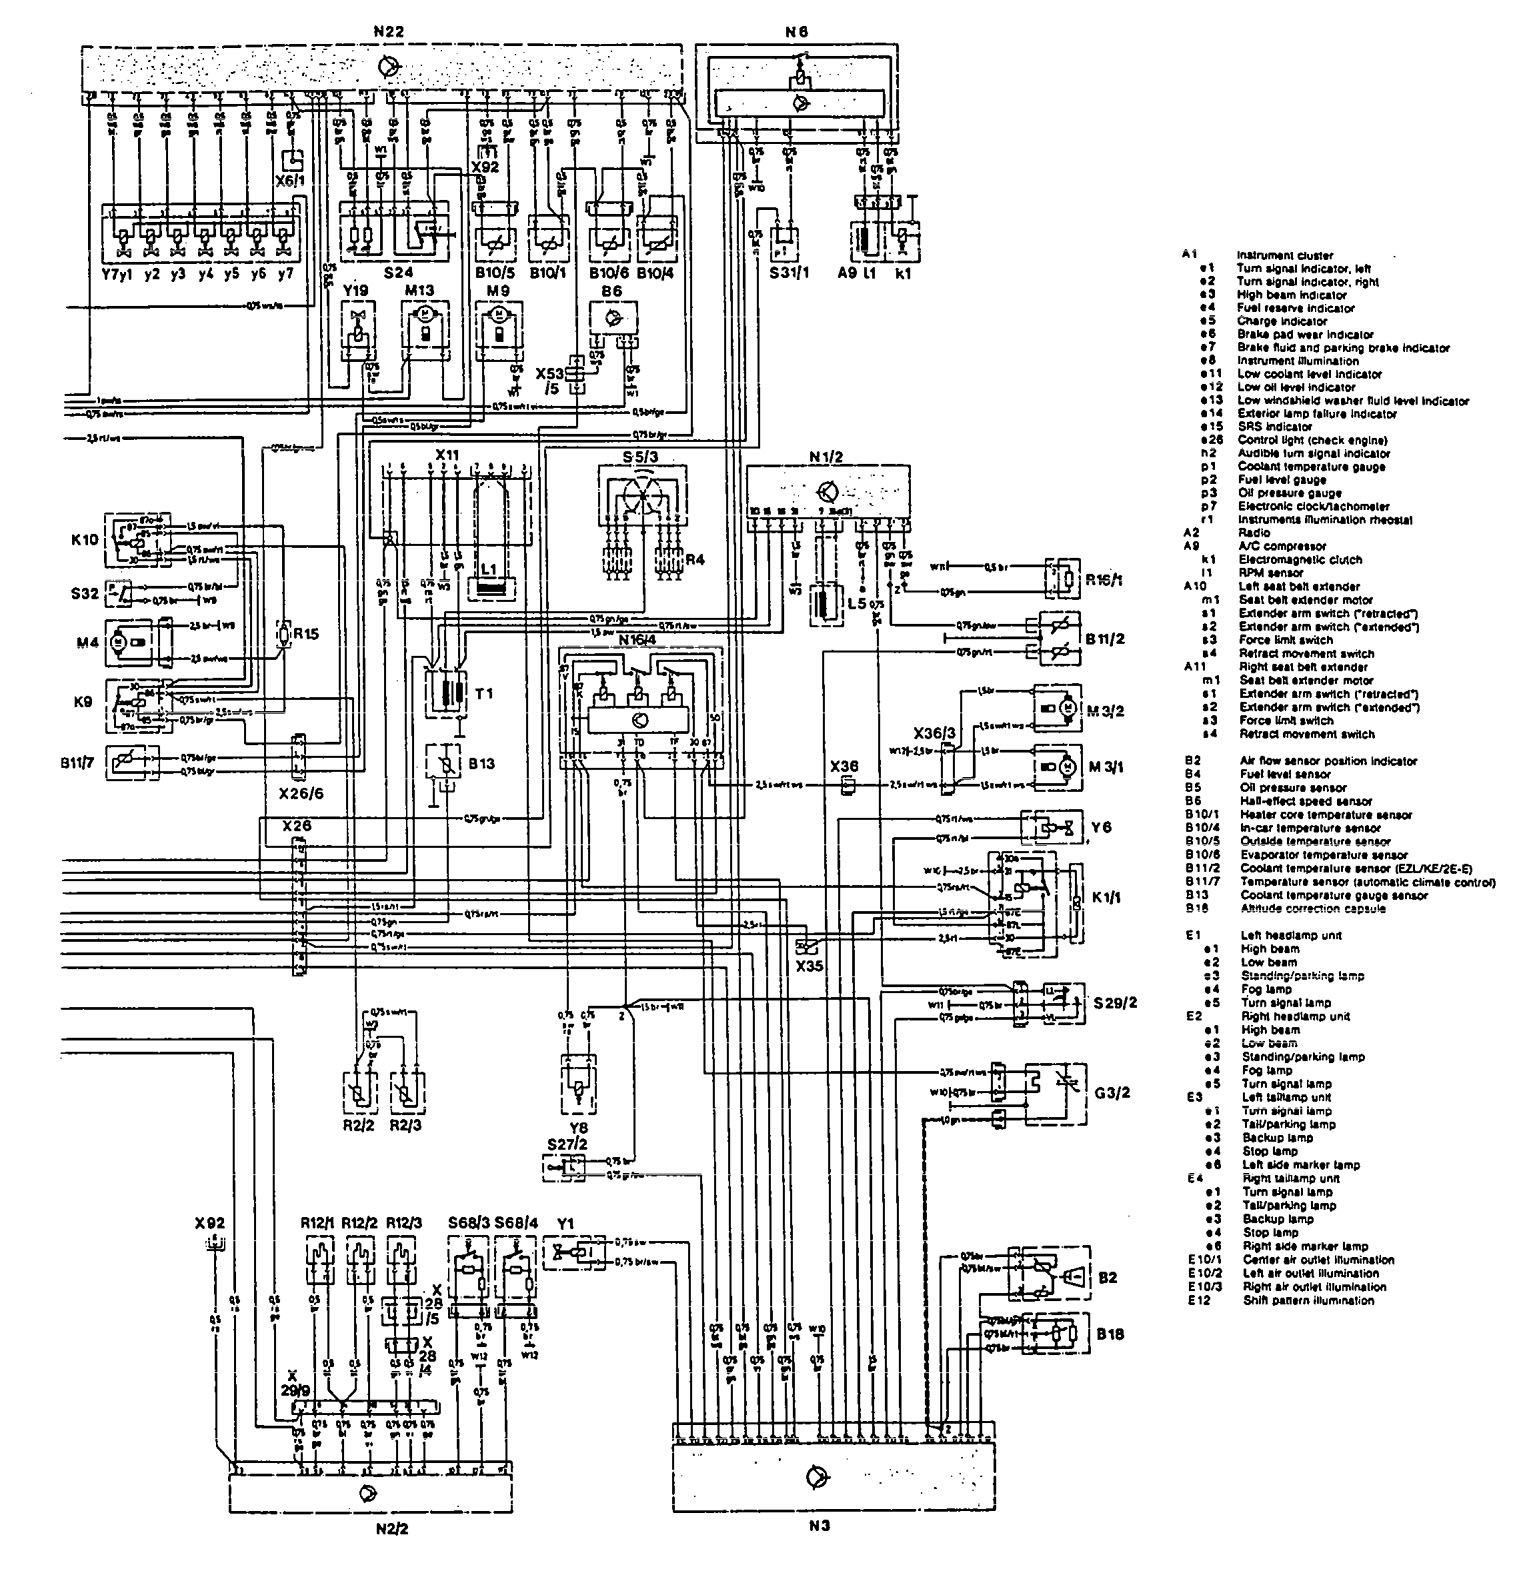 Wiring Diagram For Mercedes 300ce Fuse Box 2204 Battery Benz Wire Data Schema 1992 1993 Diagrams Starting Rh Carknowledge Info 300sd Power Windows Radio